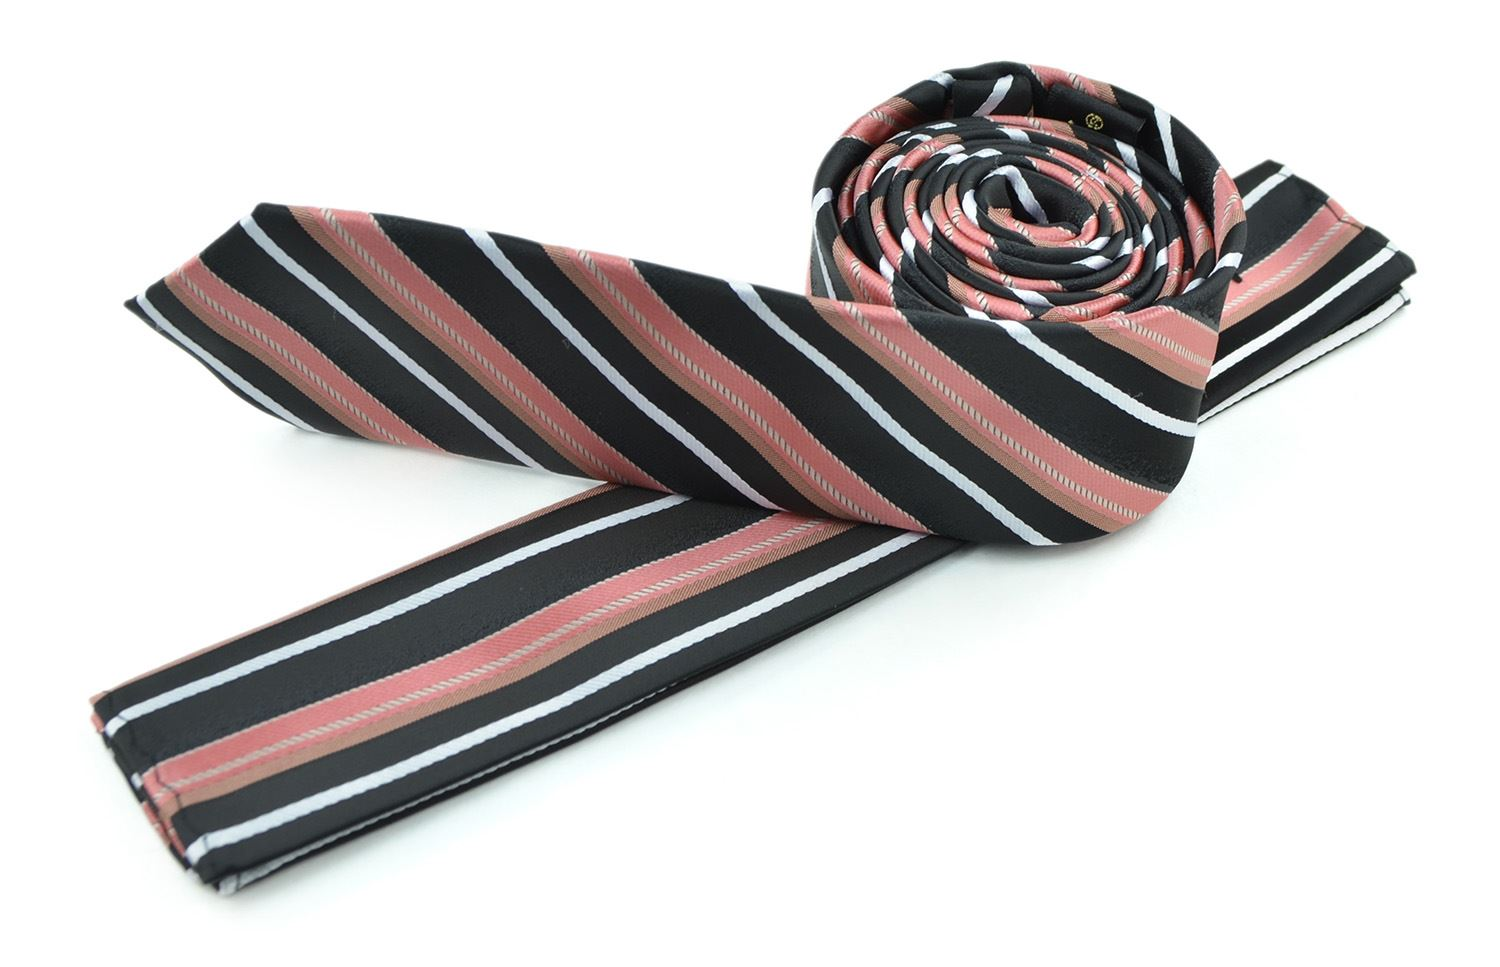 Moda Di Raza - Men's Skinny Necktie 2 Slim Tie Casual Business Formal - Red